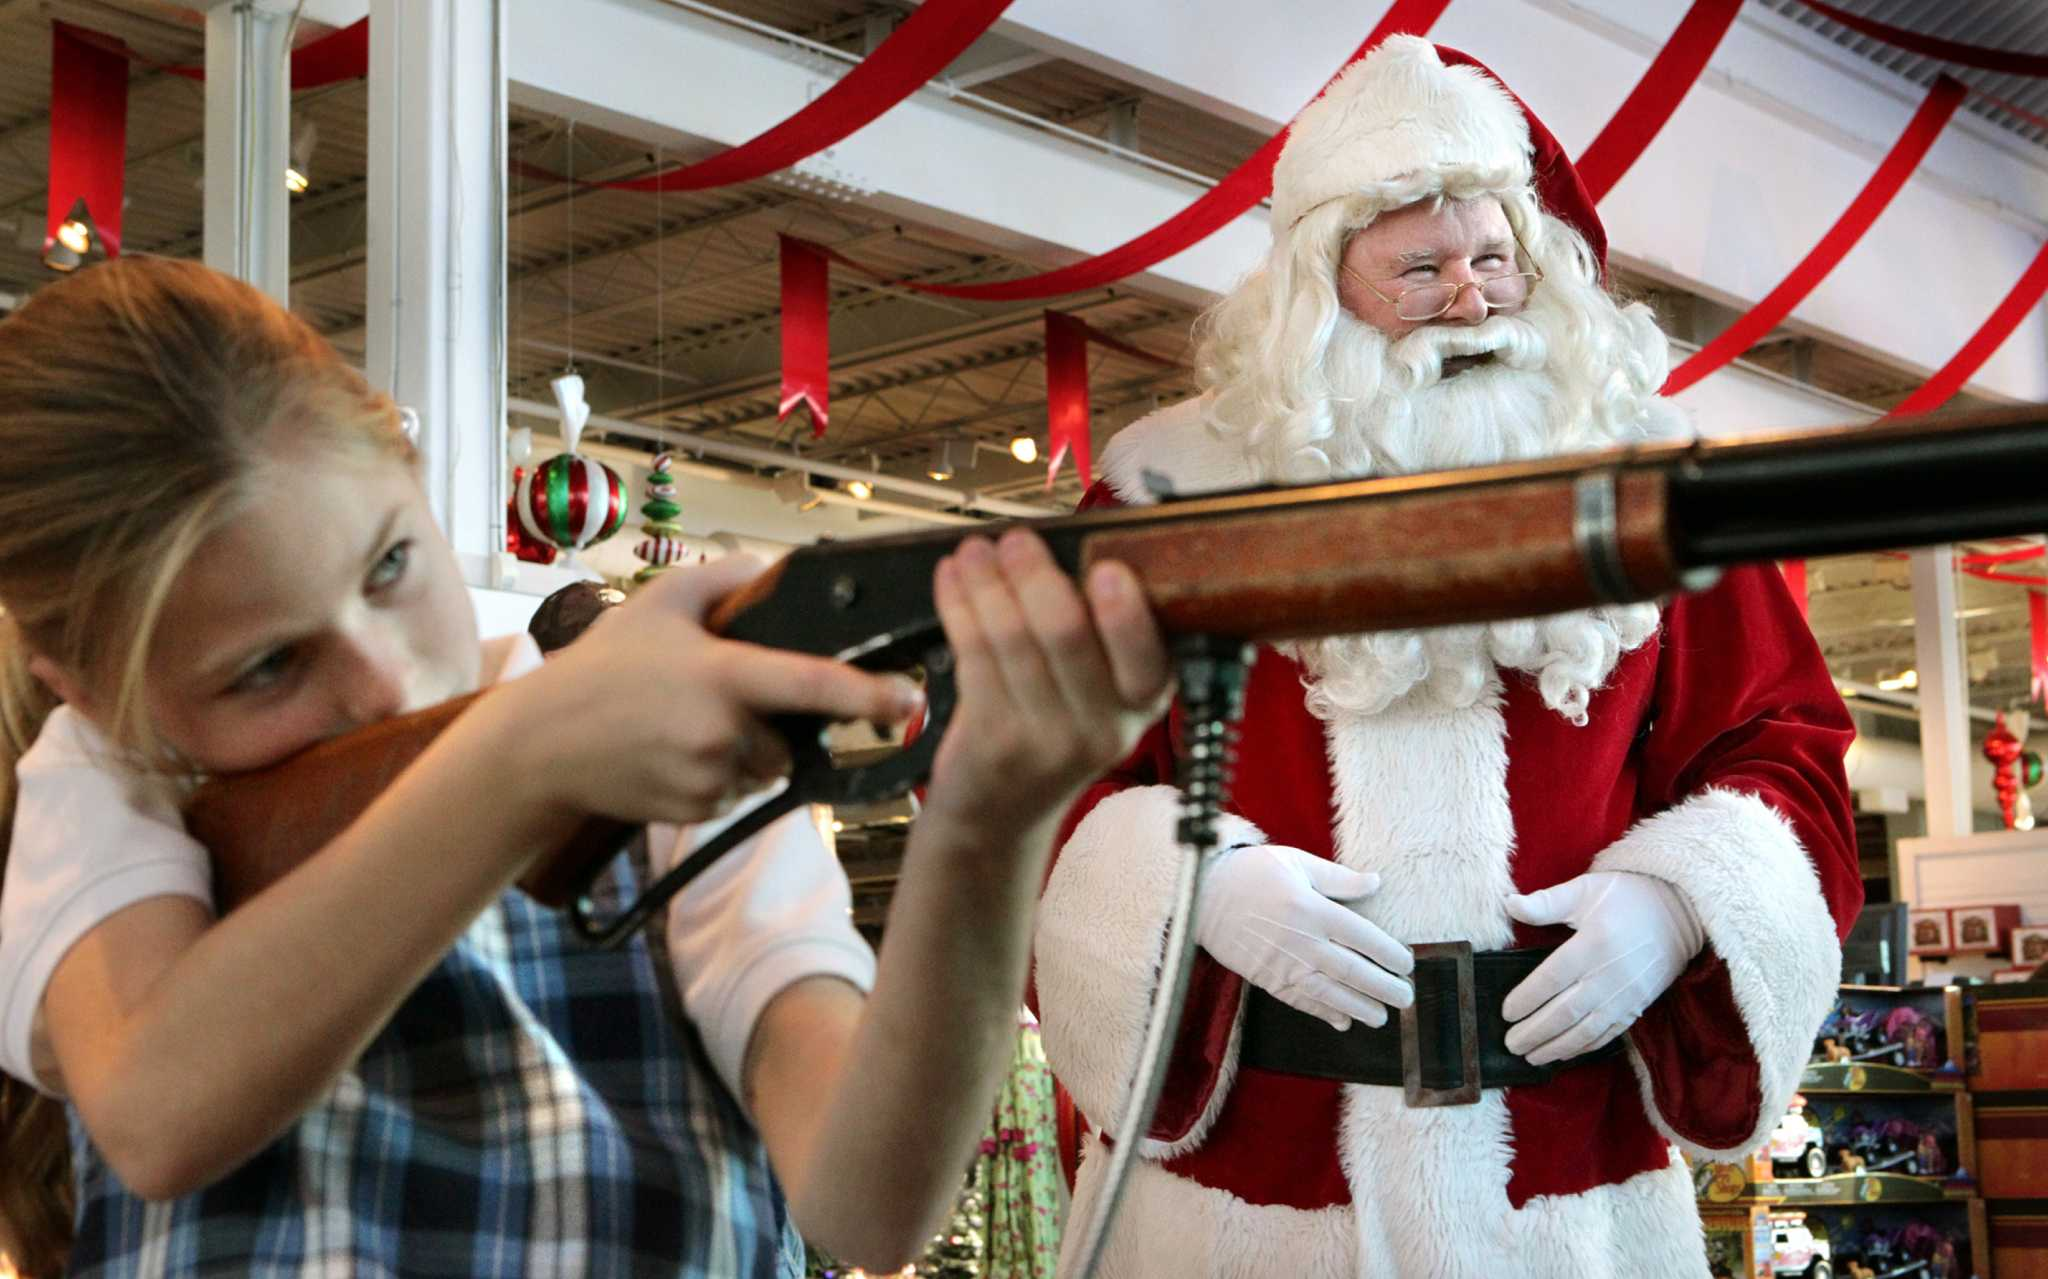 Guide to seeing Santa Claus in Houston 2019 - Chron.com